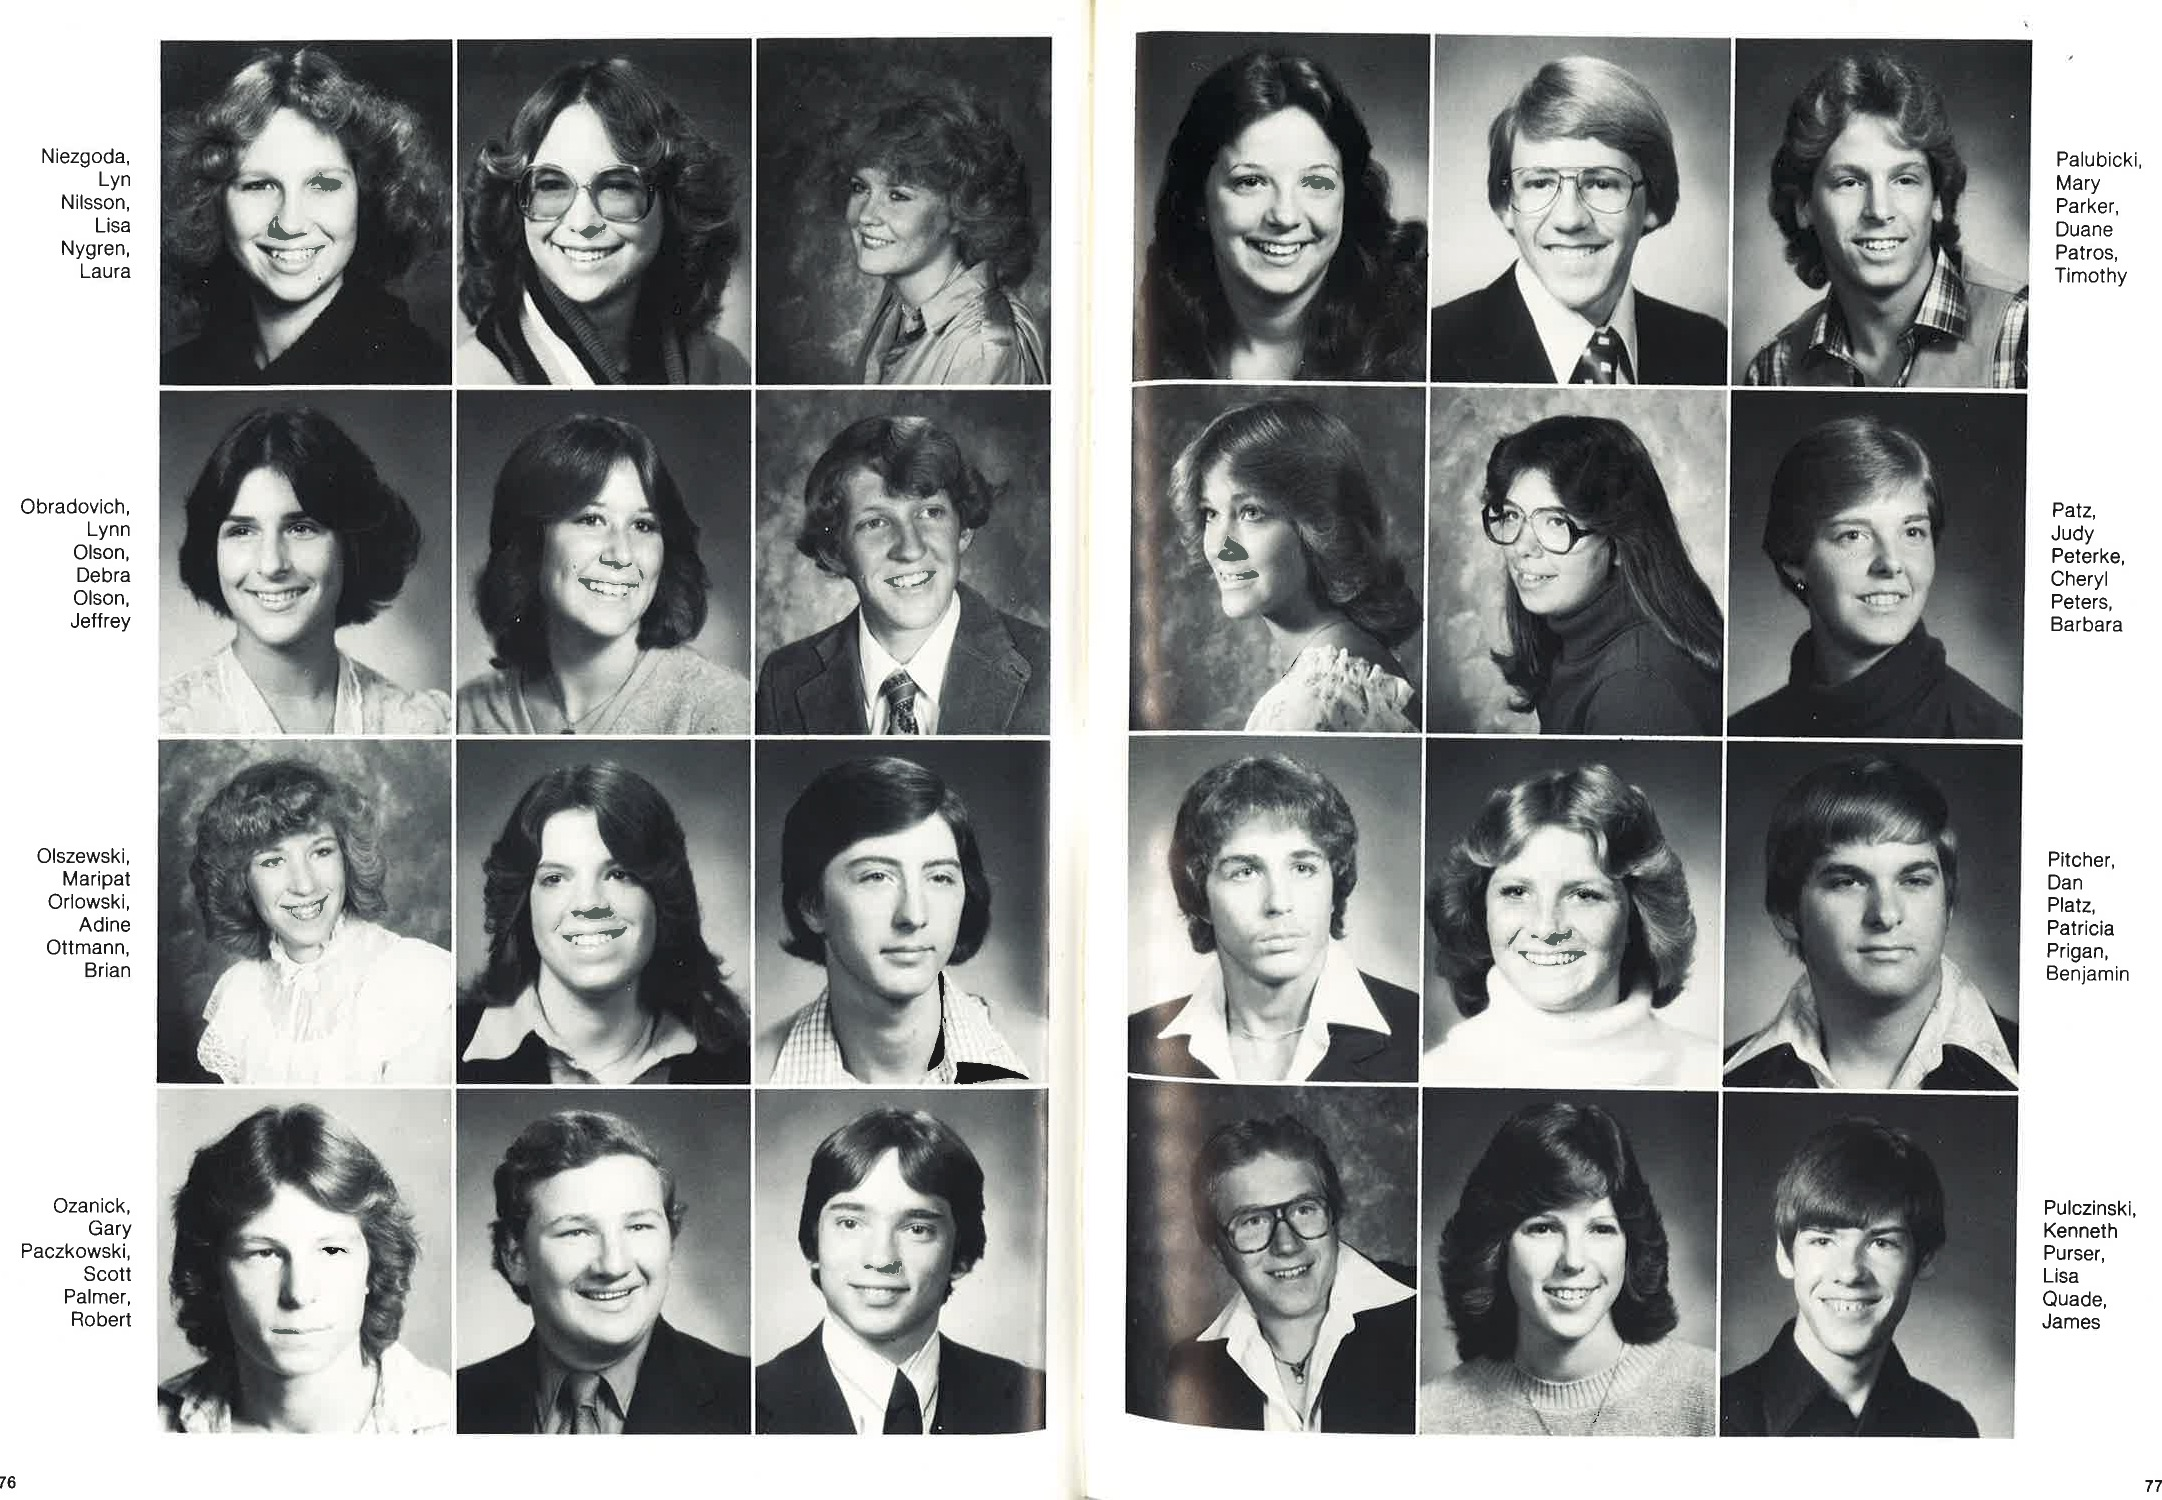 1981_Yearbook_76.jpg